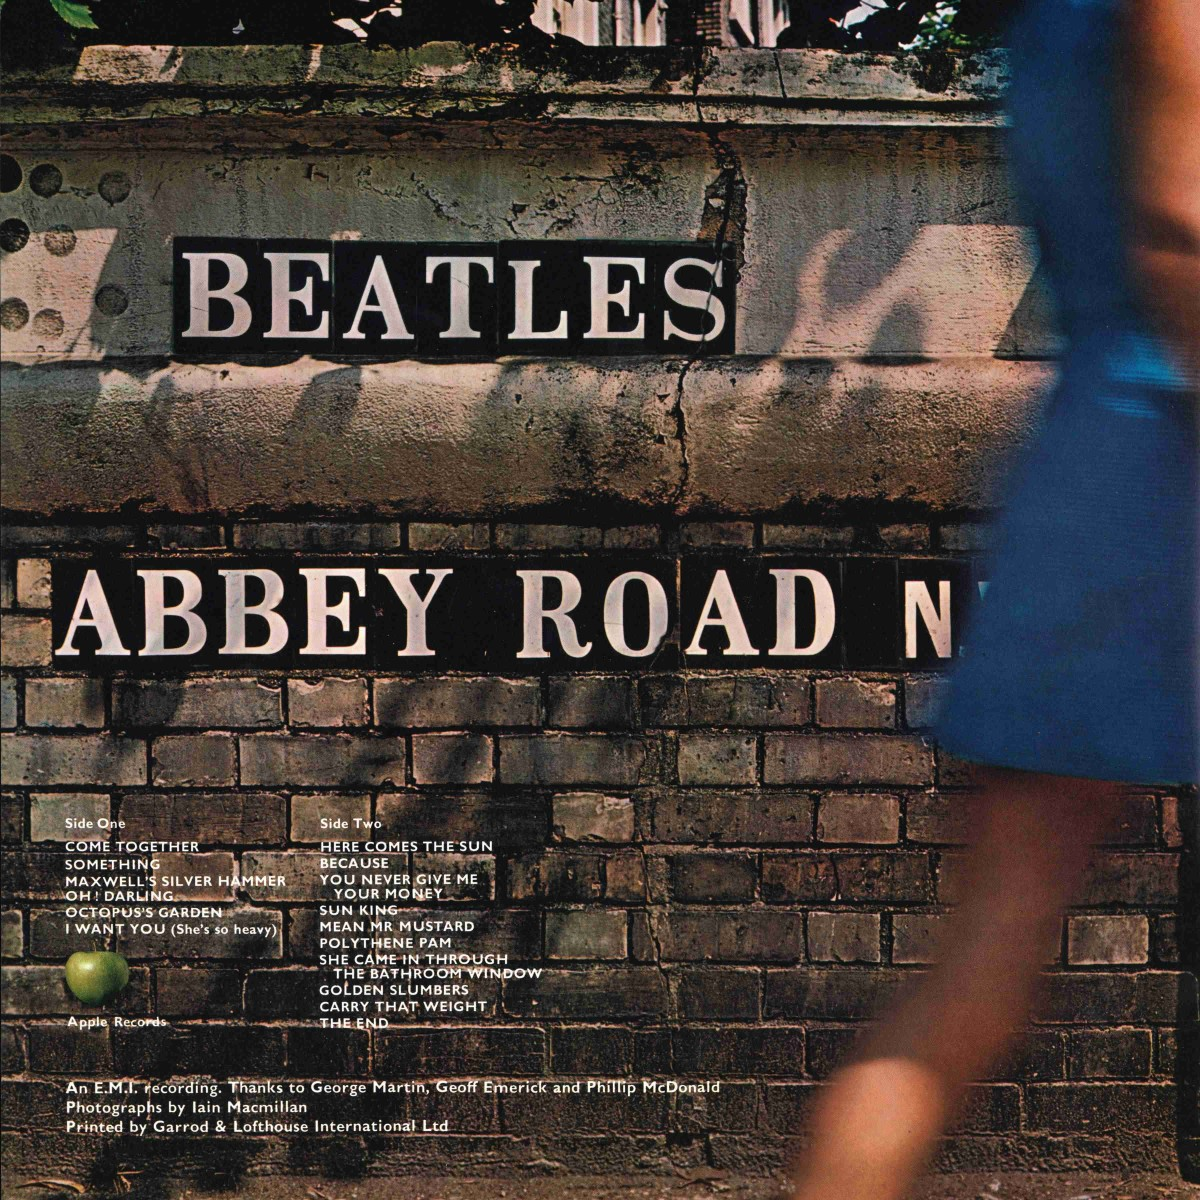 Abbey Road Album Back Cover Photo